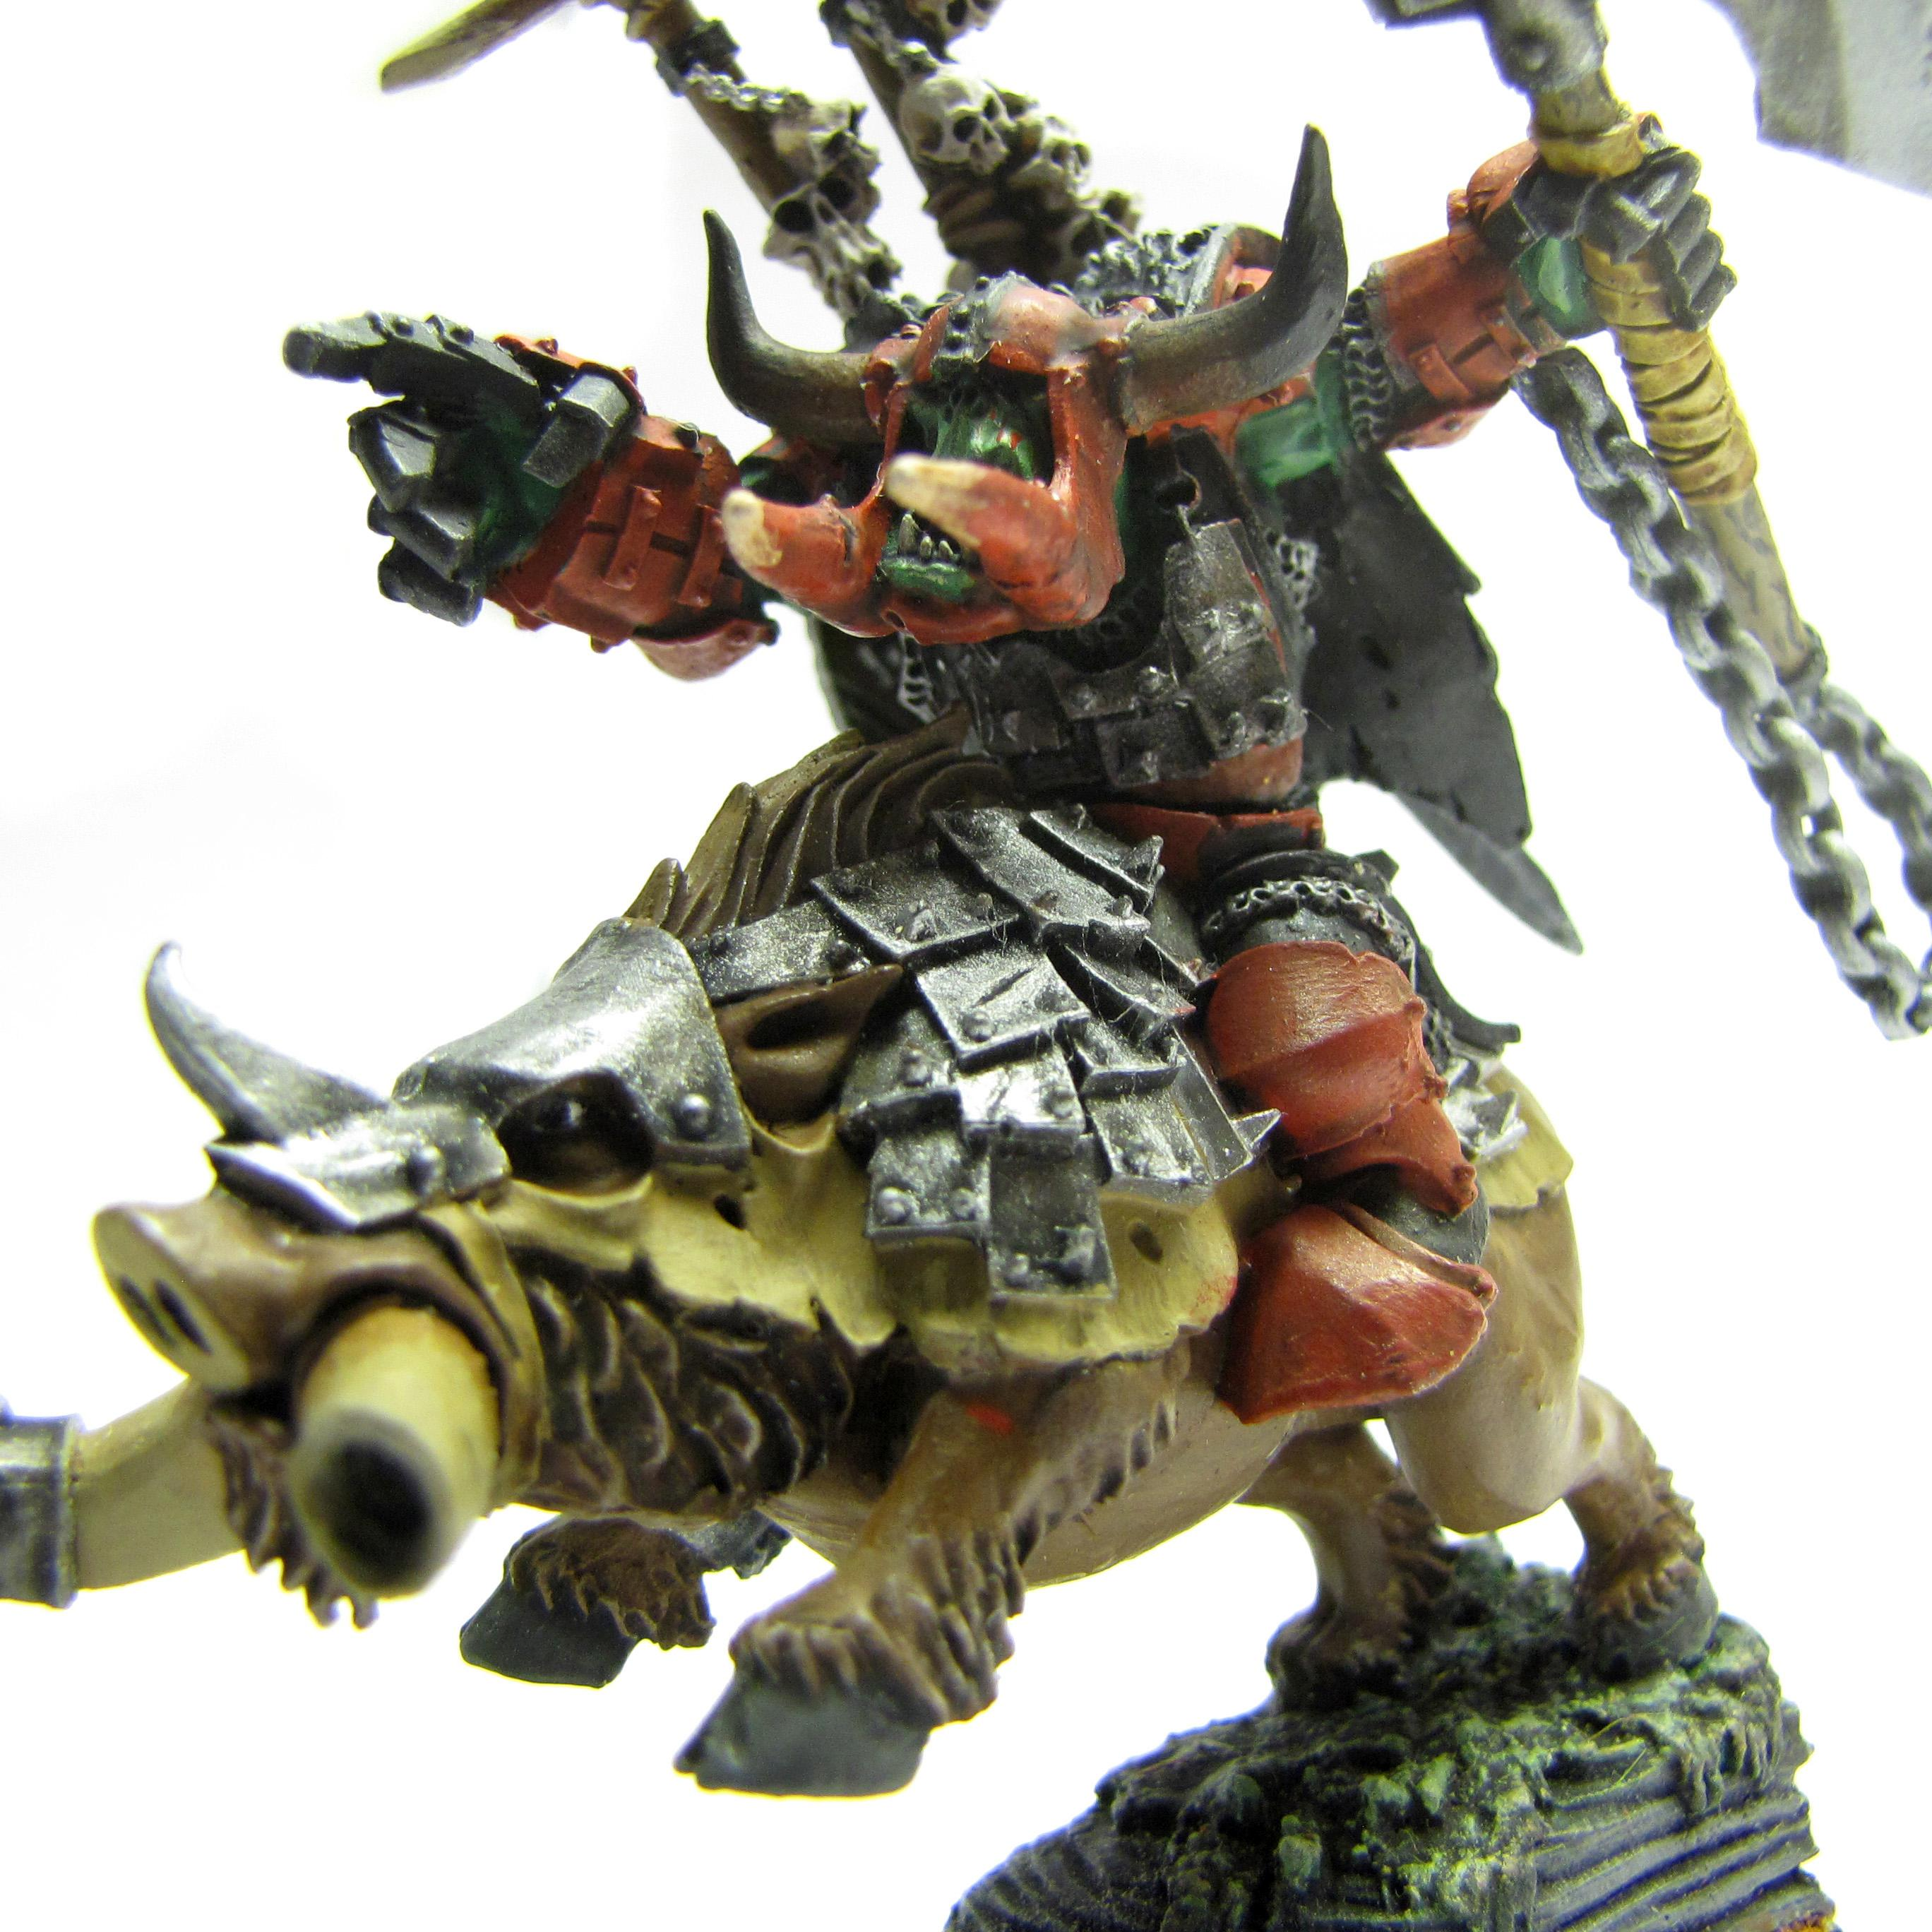 Boar, First, Gorbad, Ironclaw, Newb, Orcs